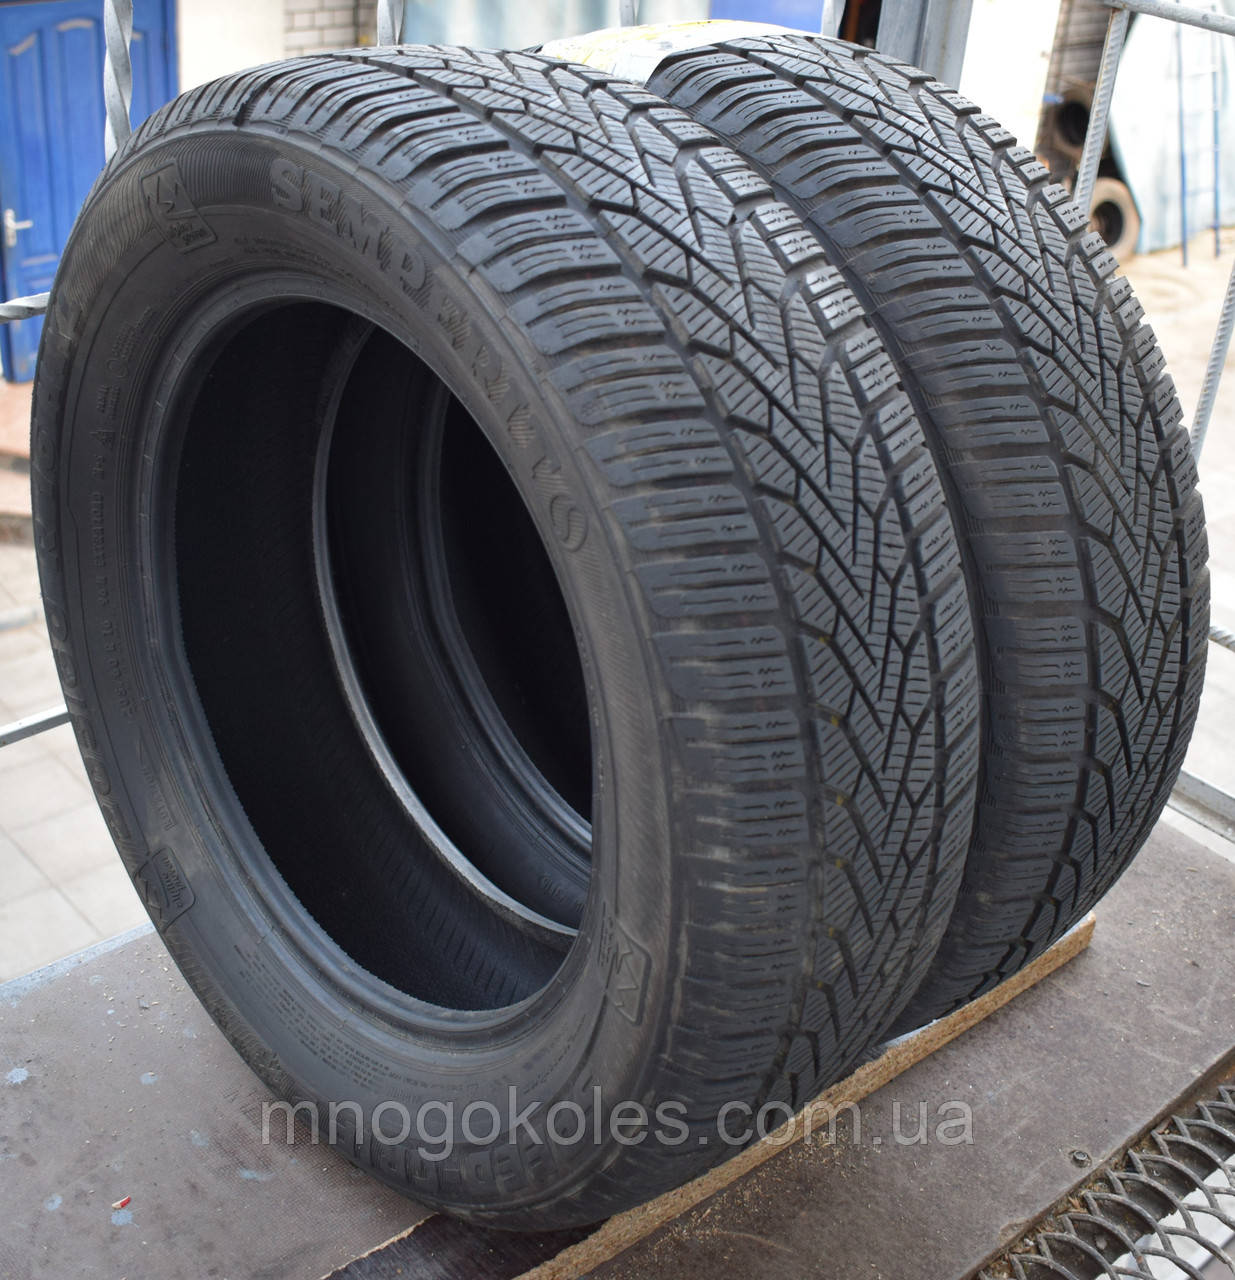 Шины б/у 205/60 R16 Semperit Speed Grip 2, 8 мм, пара